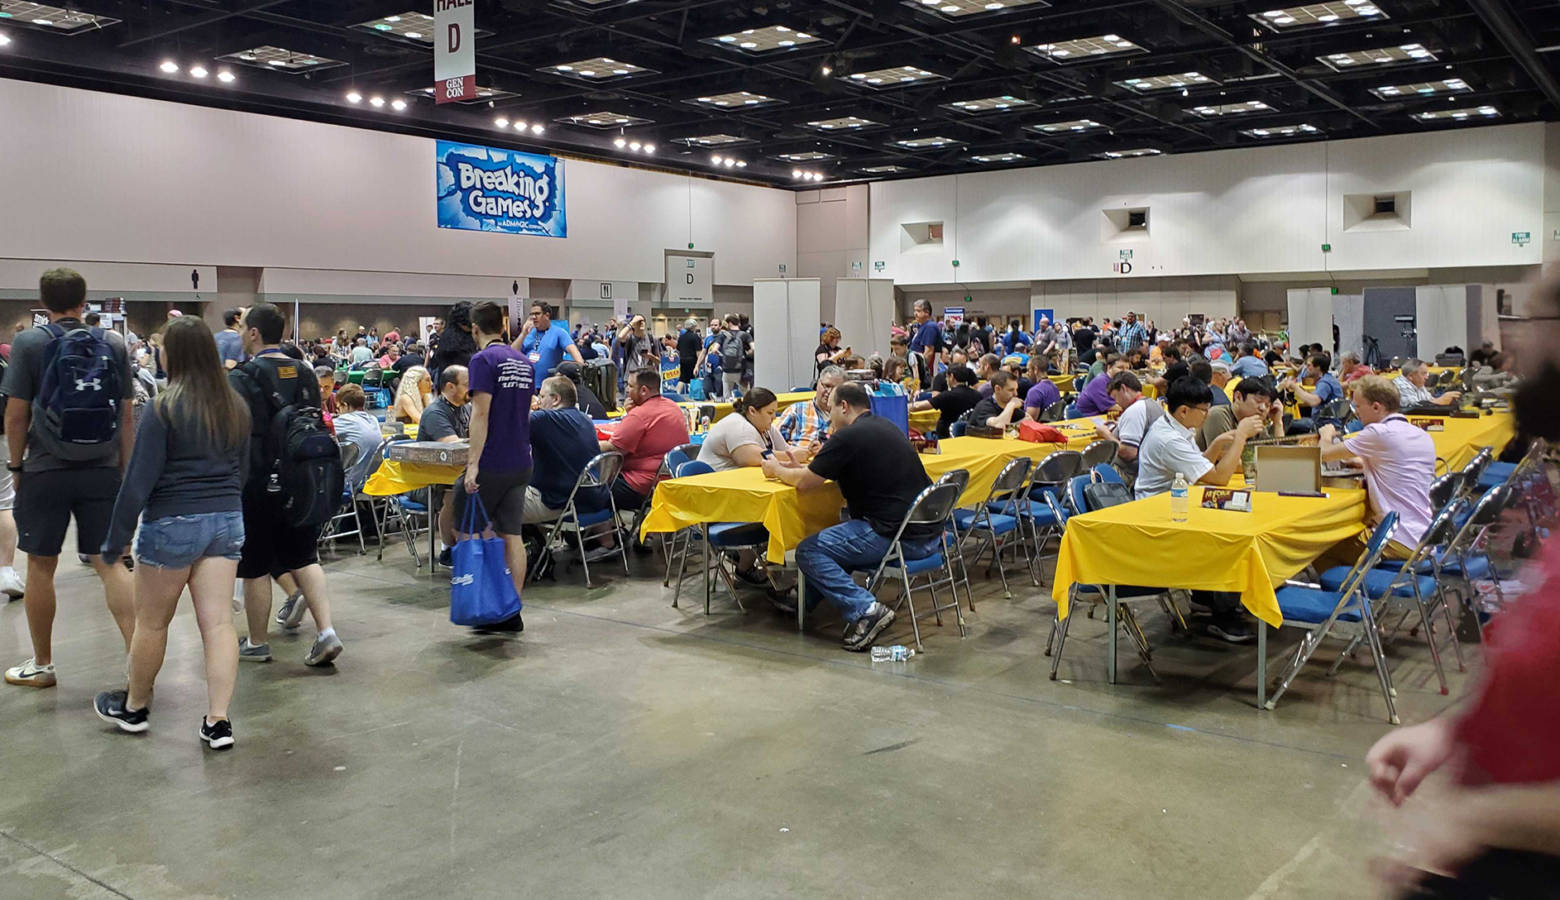 Attendees play games at the 2019 Gen Con in Indianapolis Saturday afternoon. (Samantha Horton/IPB News)